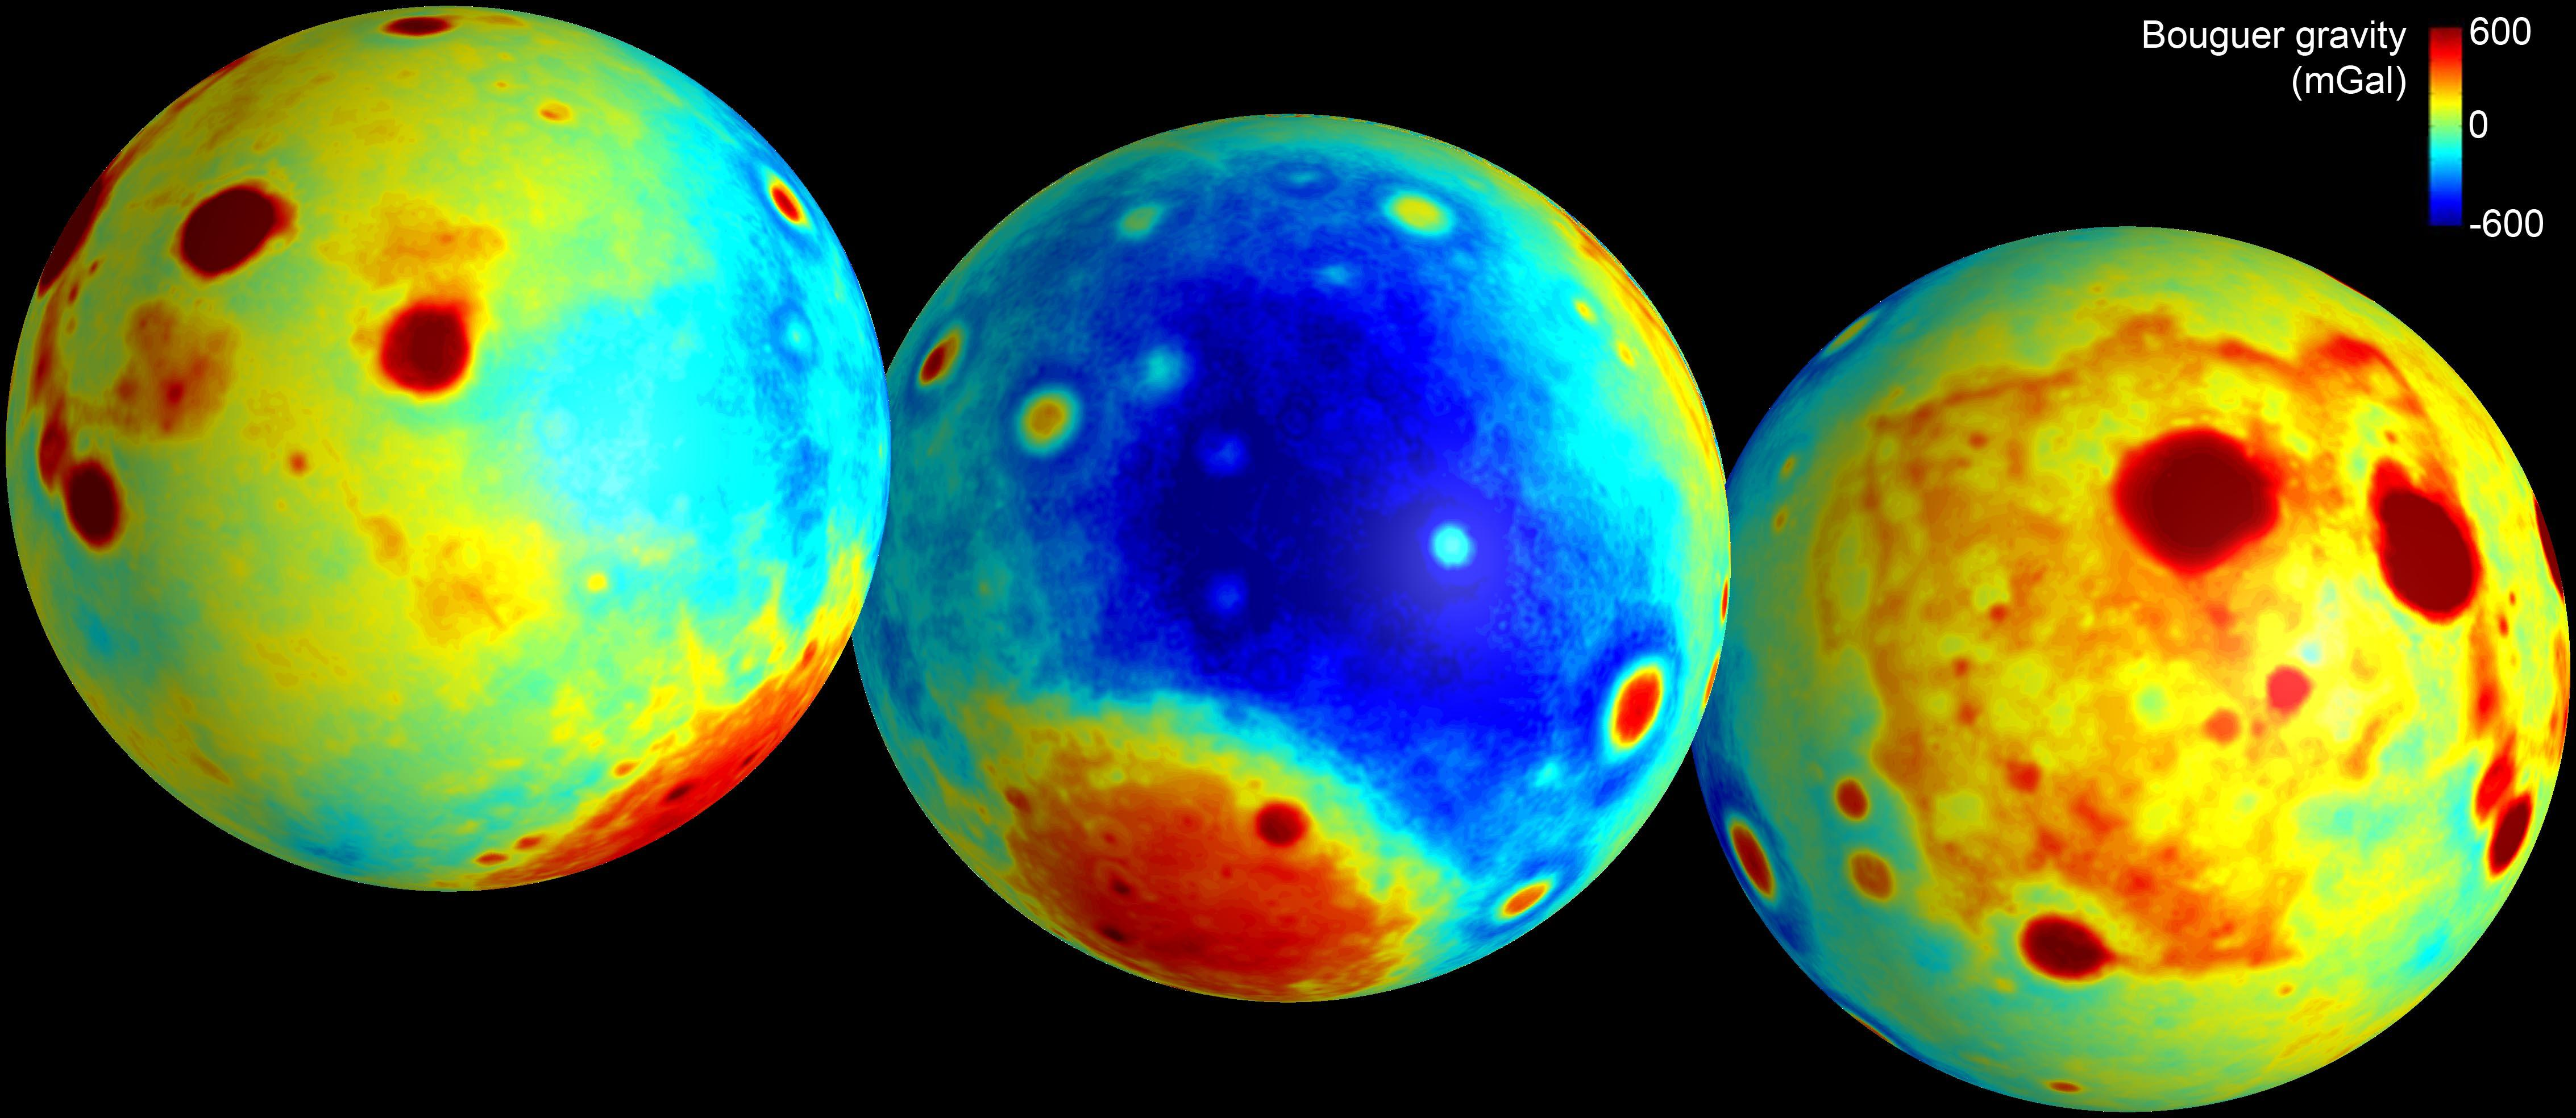 Three heat maps showing the moon's gravity